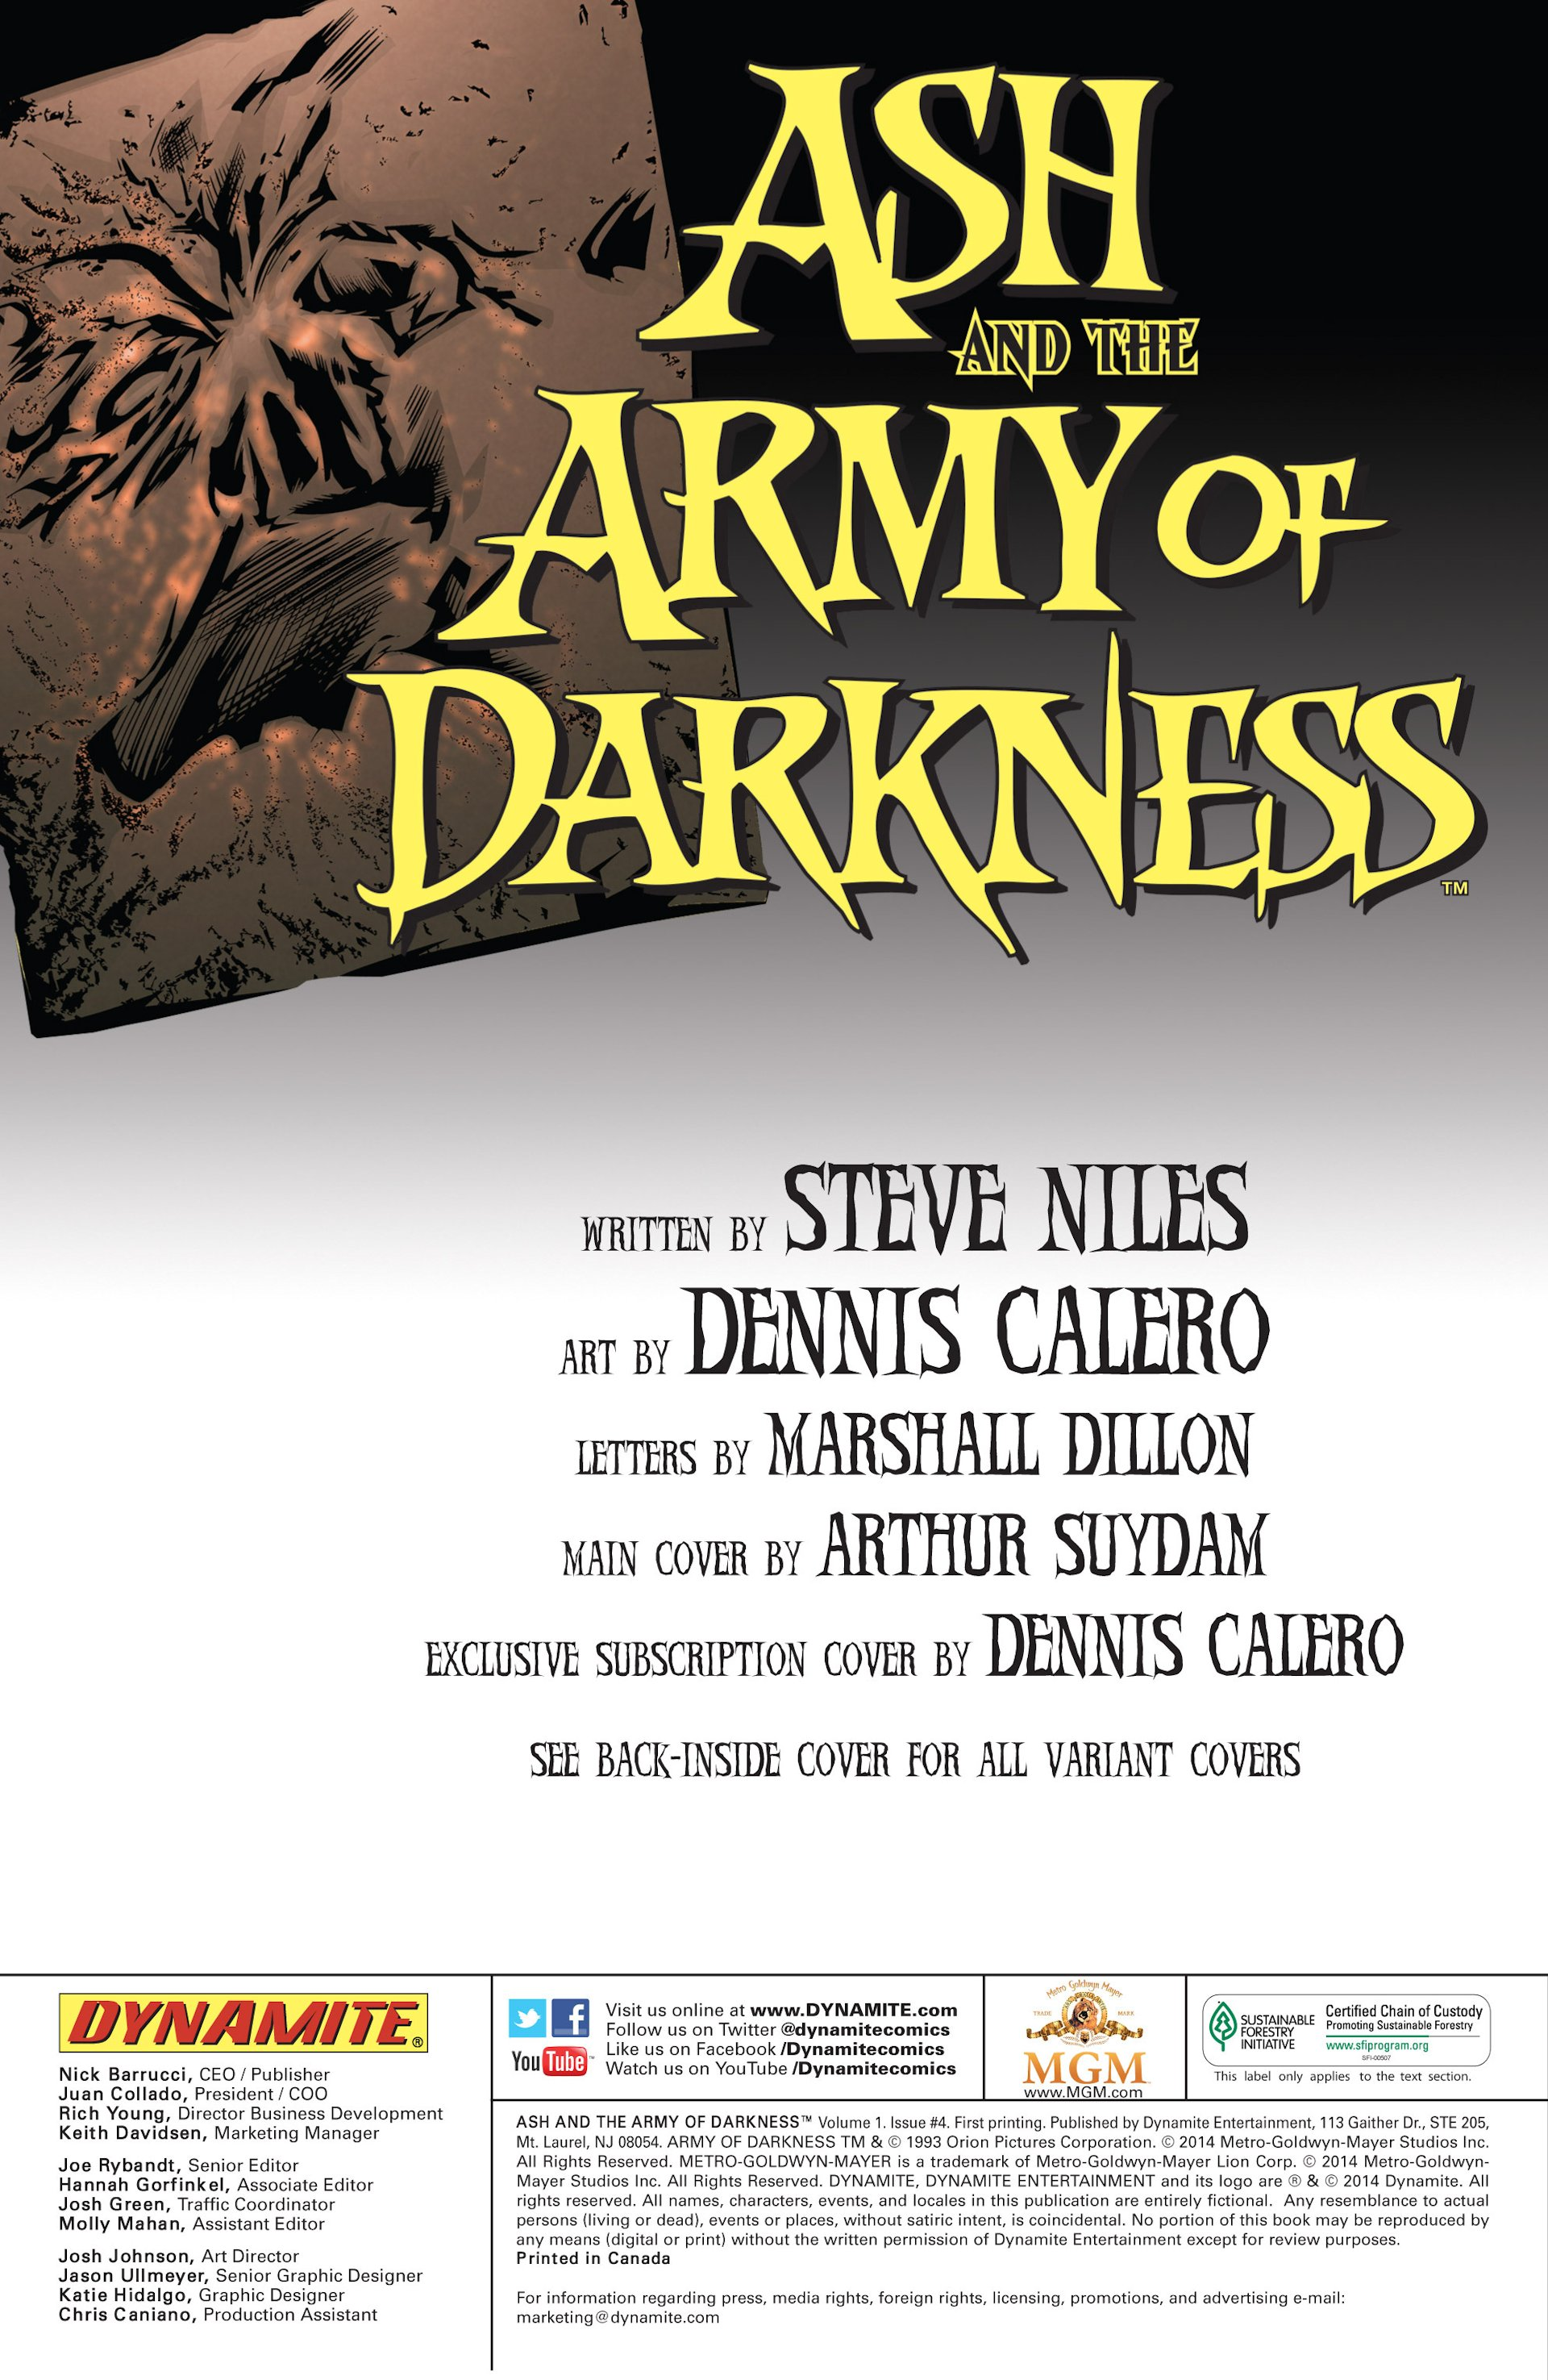 Read online Ash and the Army of Darkness comic -  Issue #4 - 2